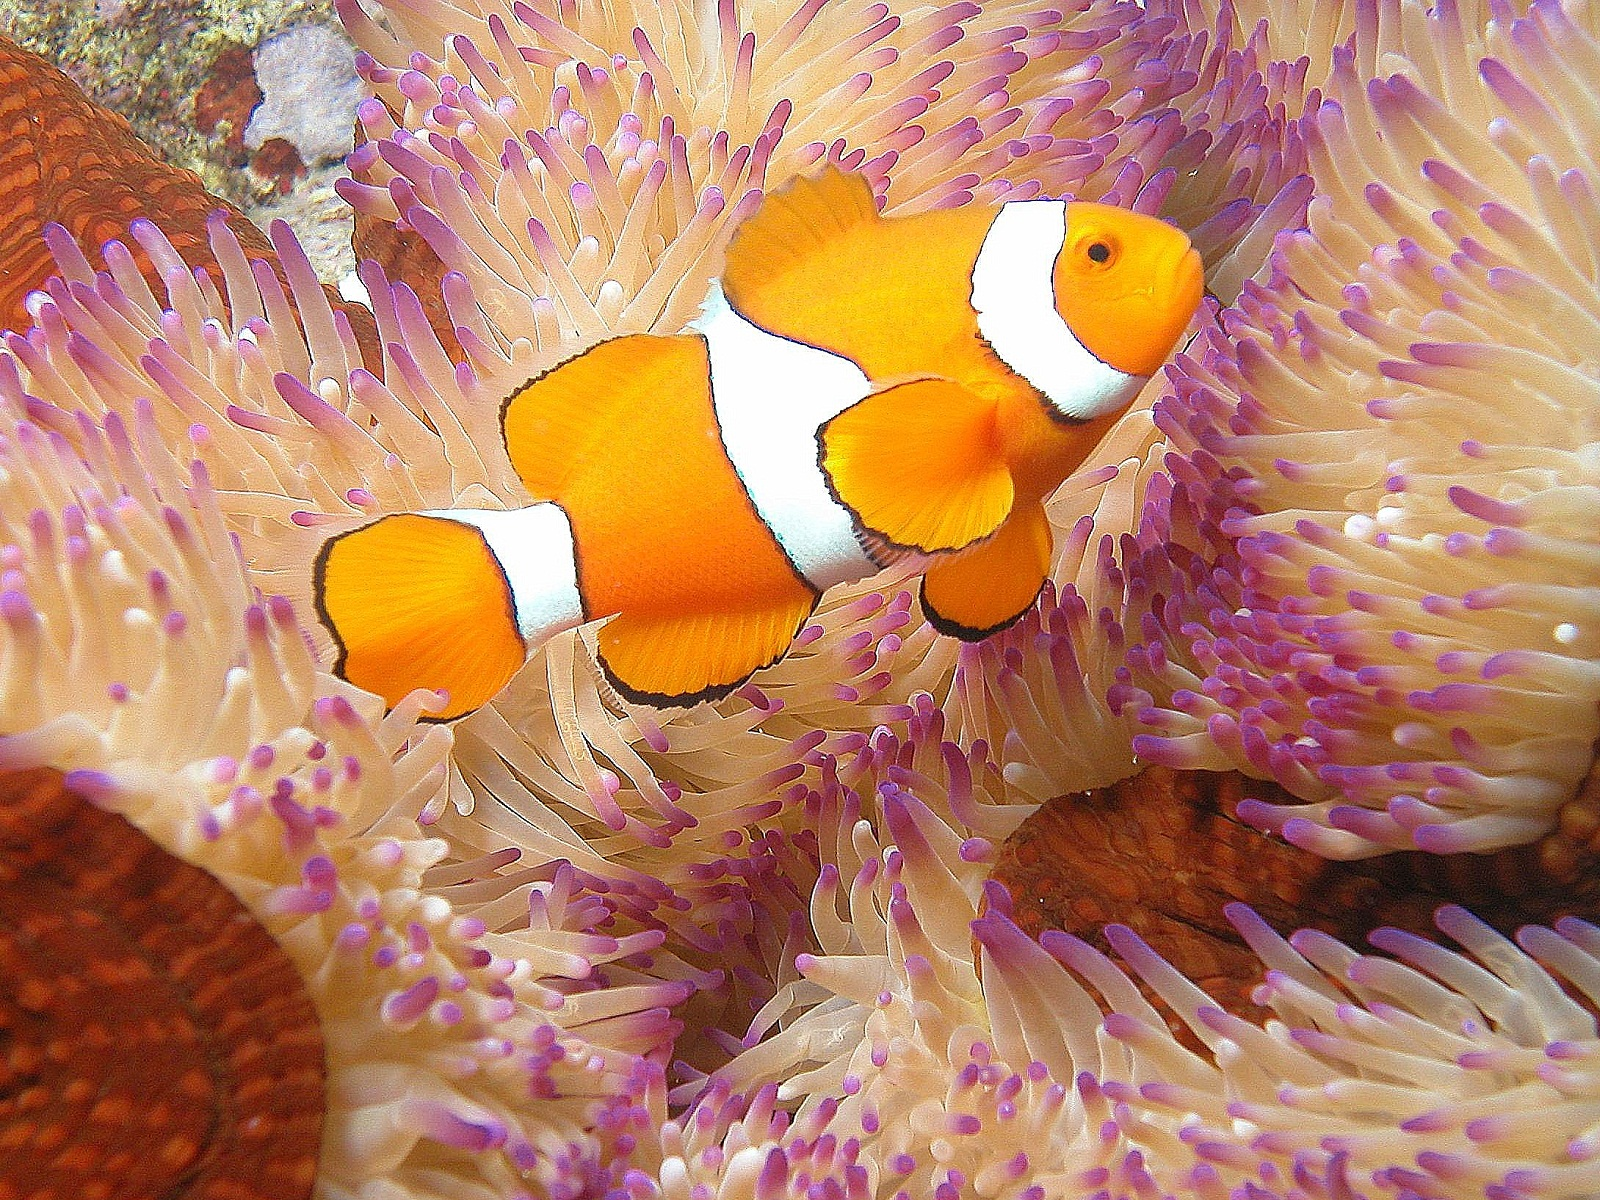 Great barrier reef australia clownfish and anemone 308 for Clown fish facts